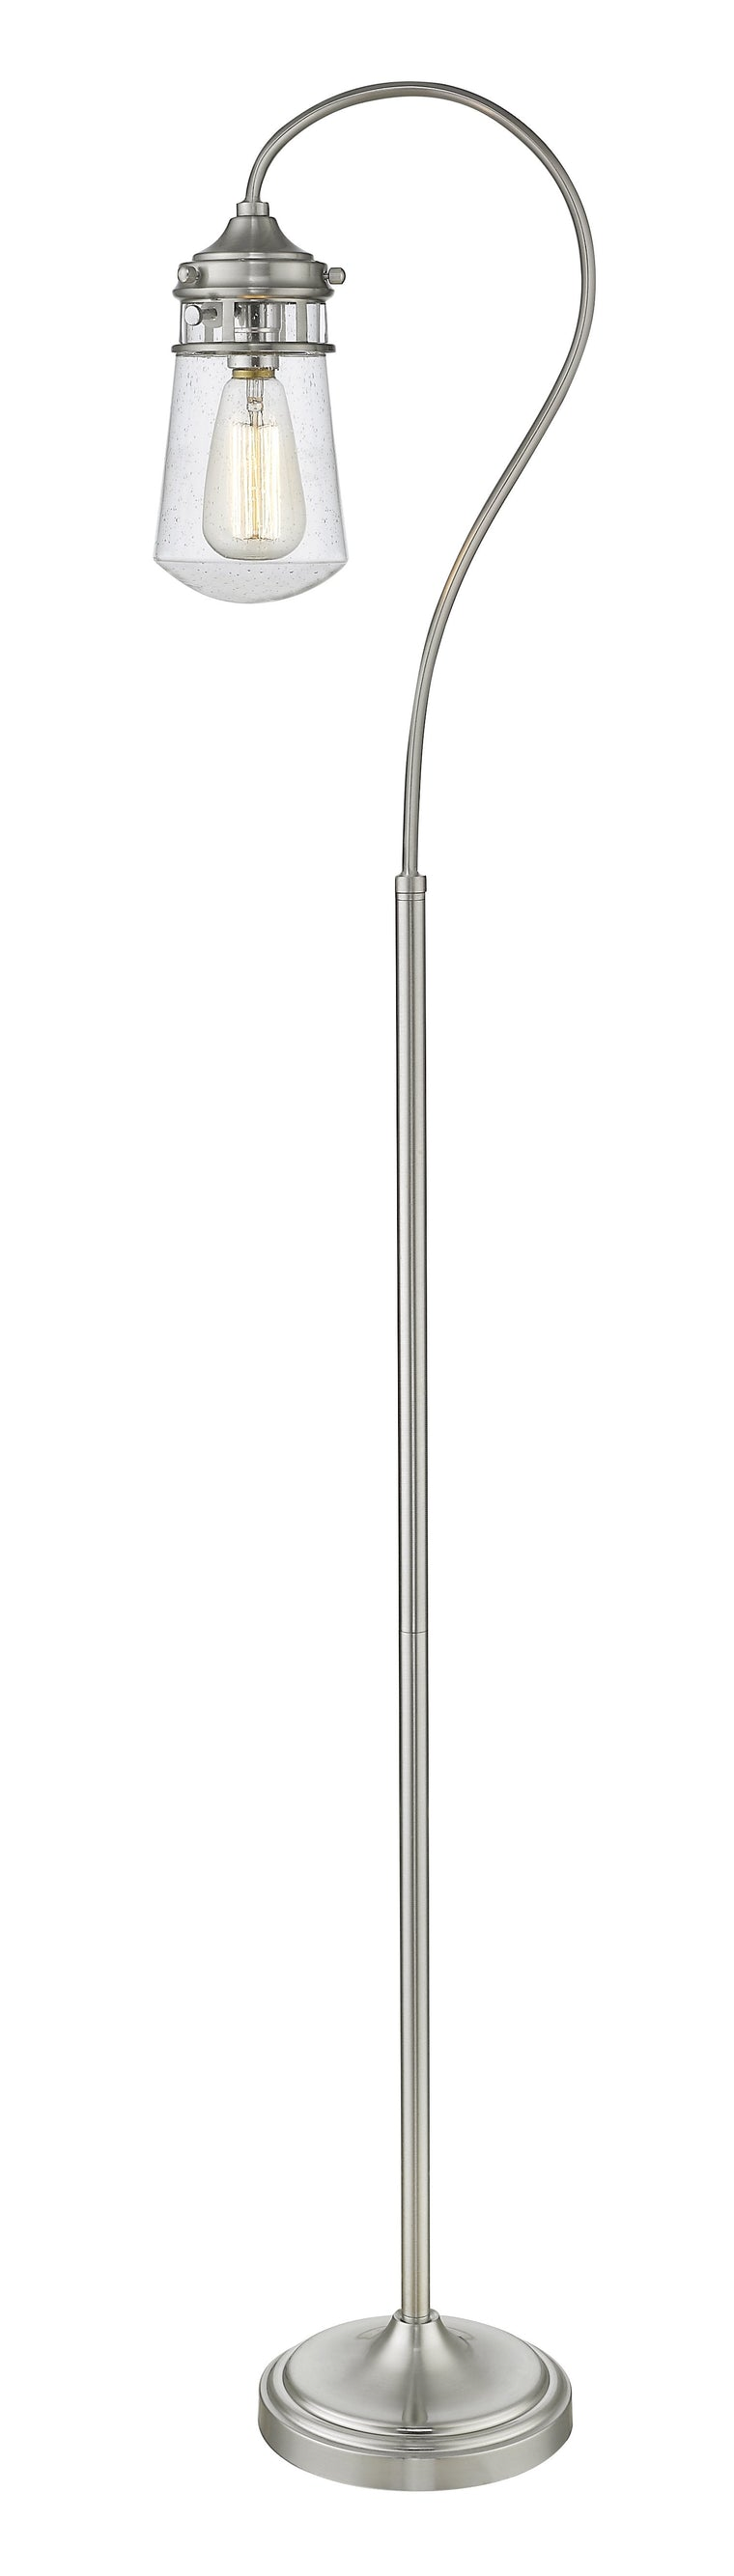 Celeste Brushed Nickel With Clear Seedy Shade Floor Lamp by Z-Lite FL120-BN